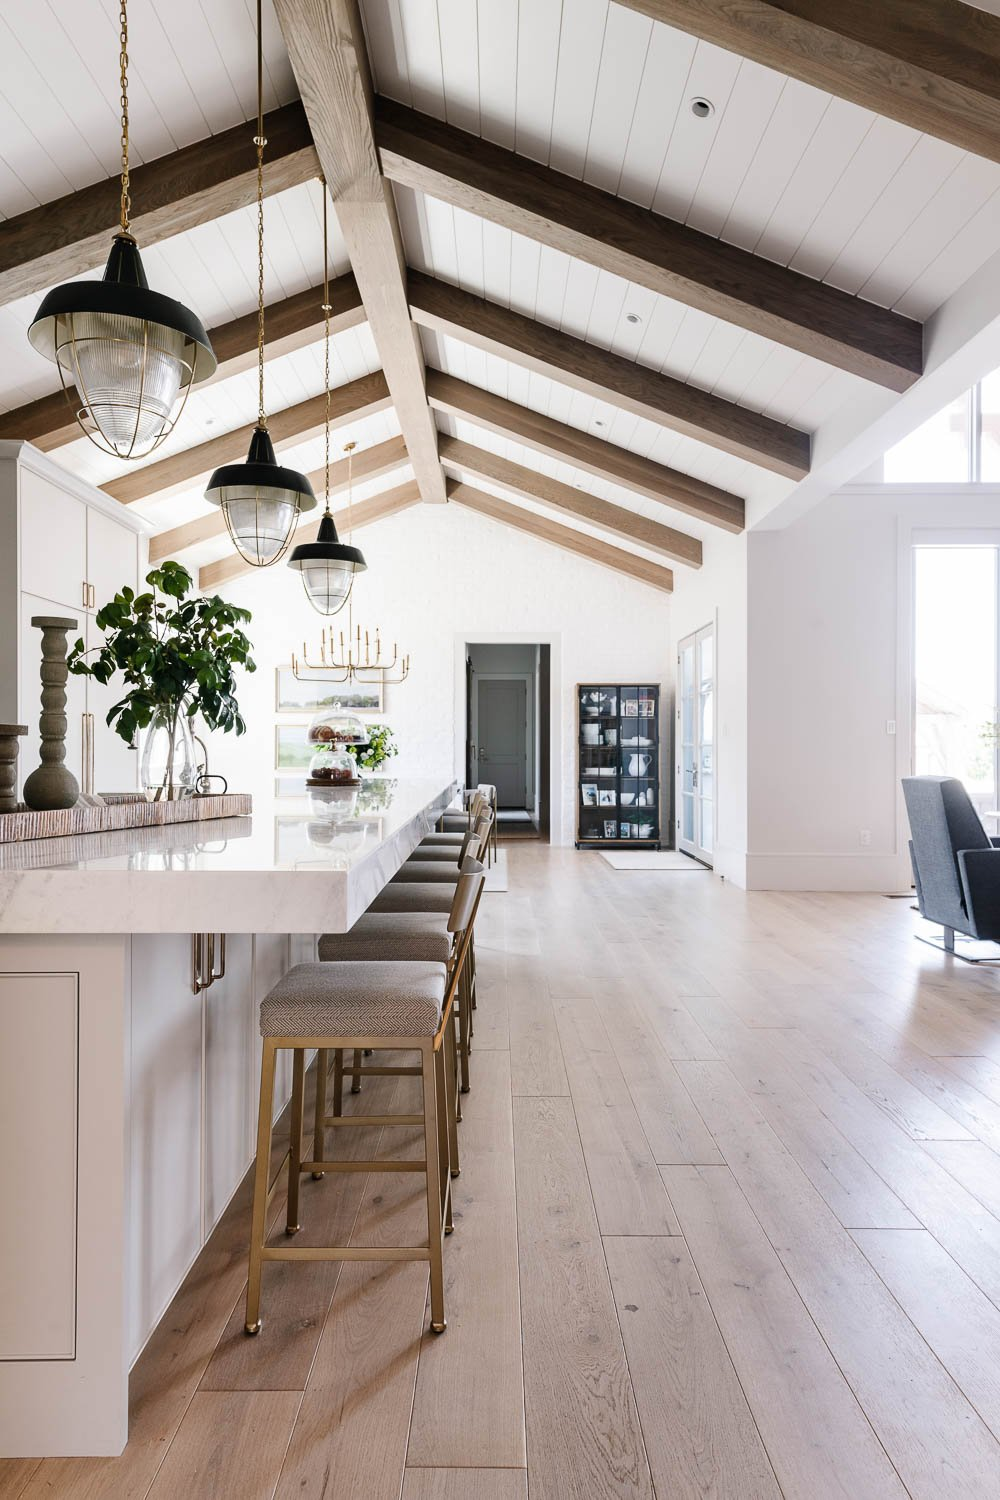 Kitchen with cathedral ceilings and beams